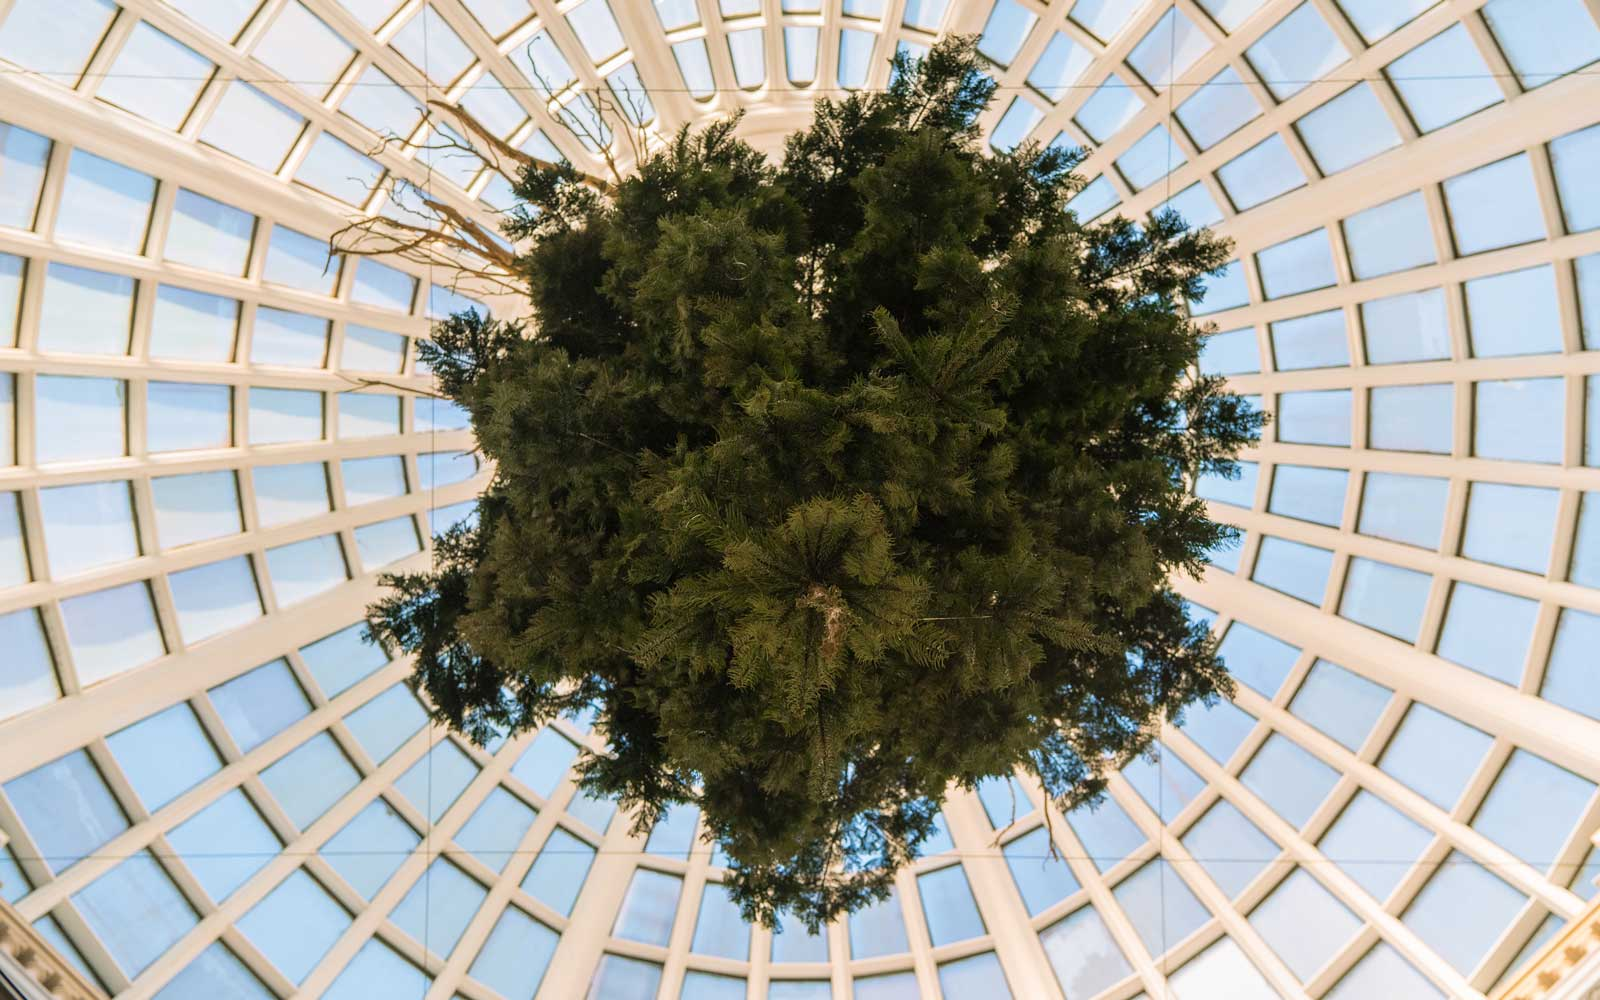 Christmas-Tree-upside-down-TATE1216.jpg